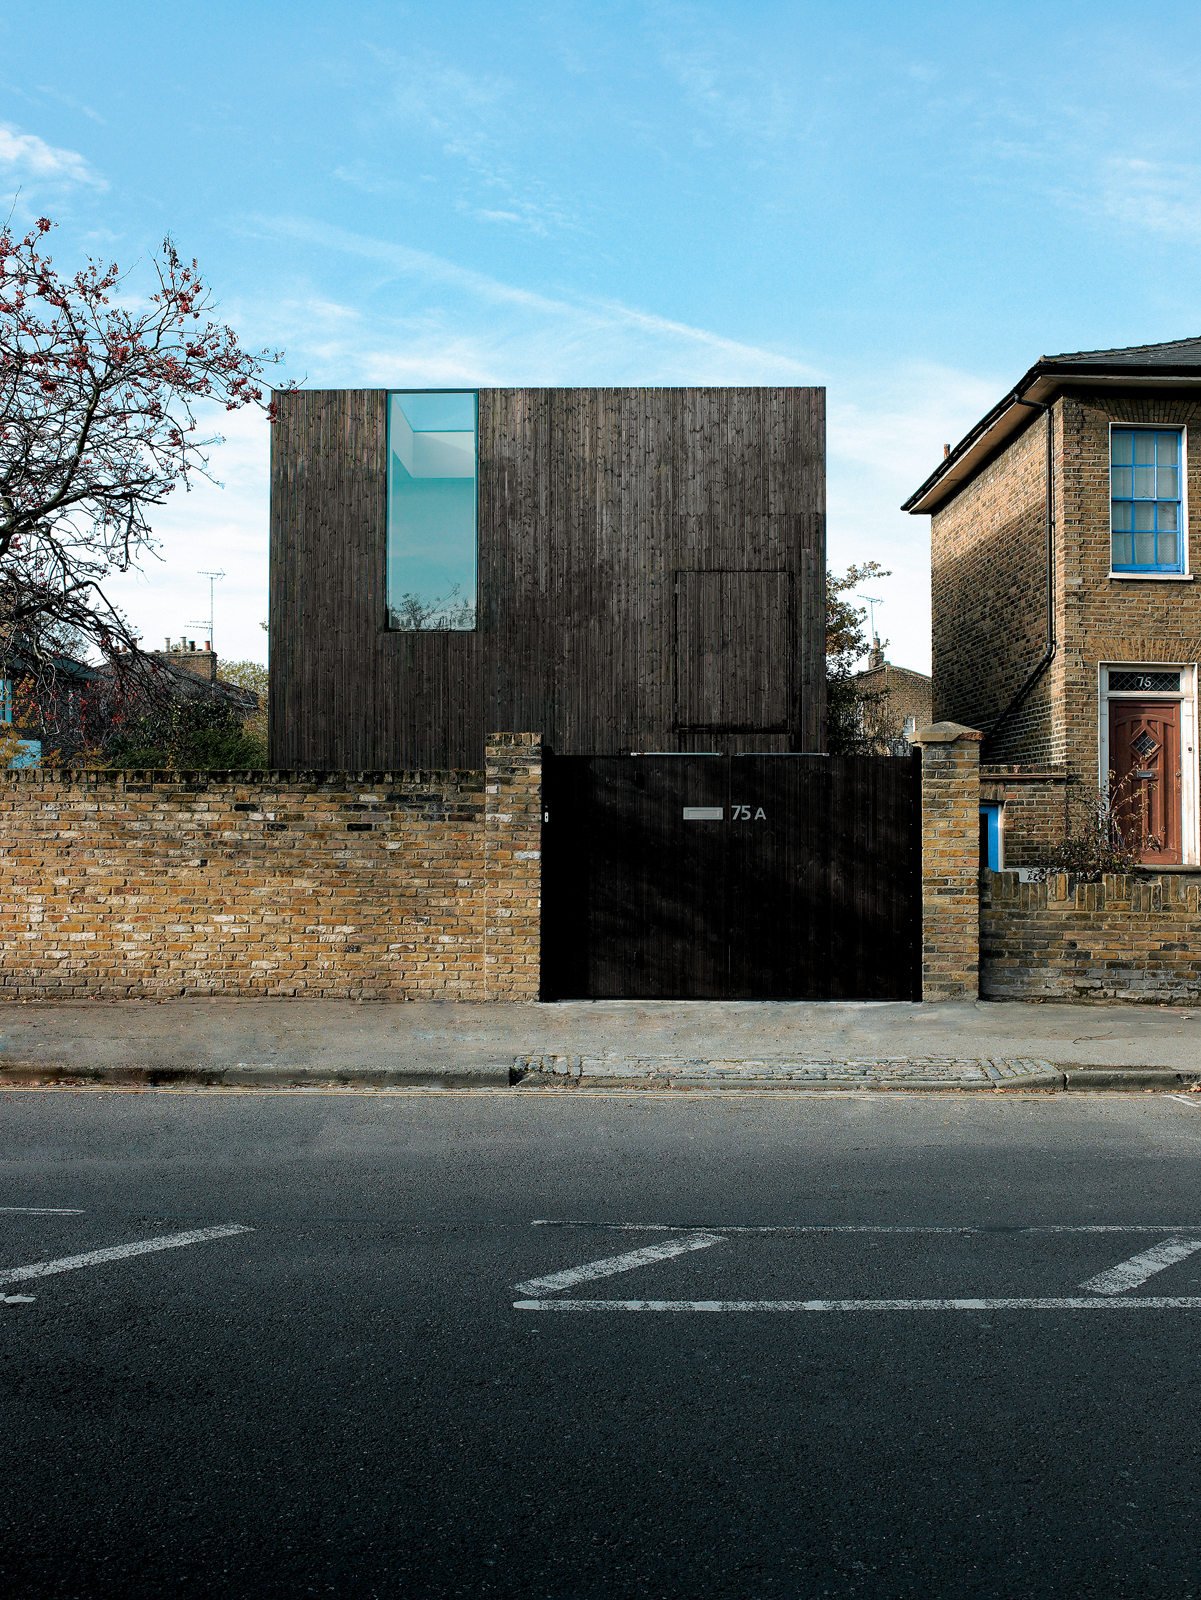 The facade achieves a notable sense of verticality for such a stout structure, with its stained-timber cladding aimed straight up toward the sky. The heavy, horizontal brick-work of the neighboring Georgian houses seems to imply aesthetic controversy, but